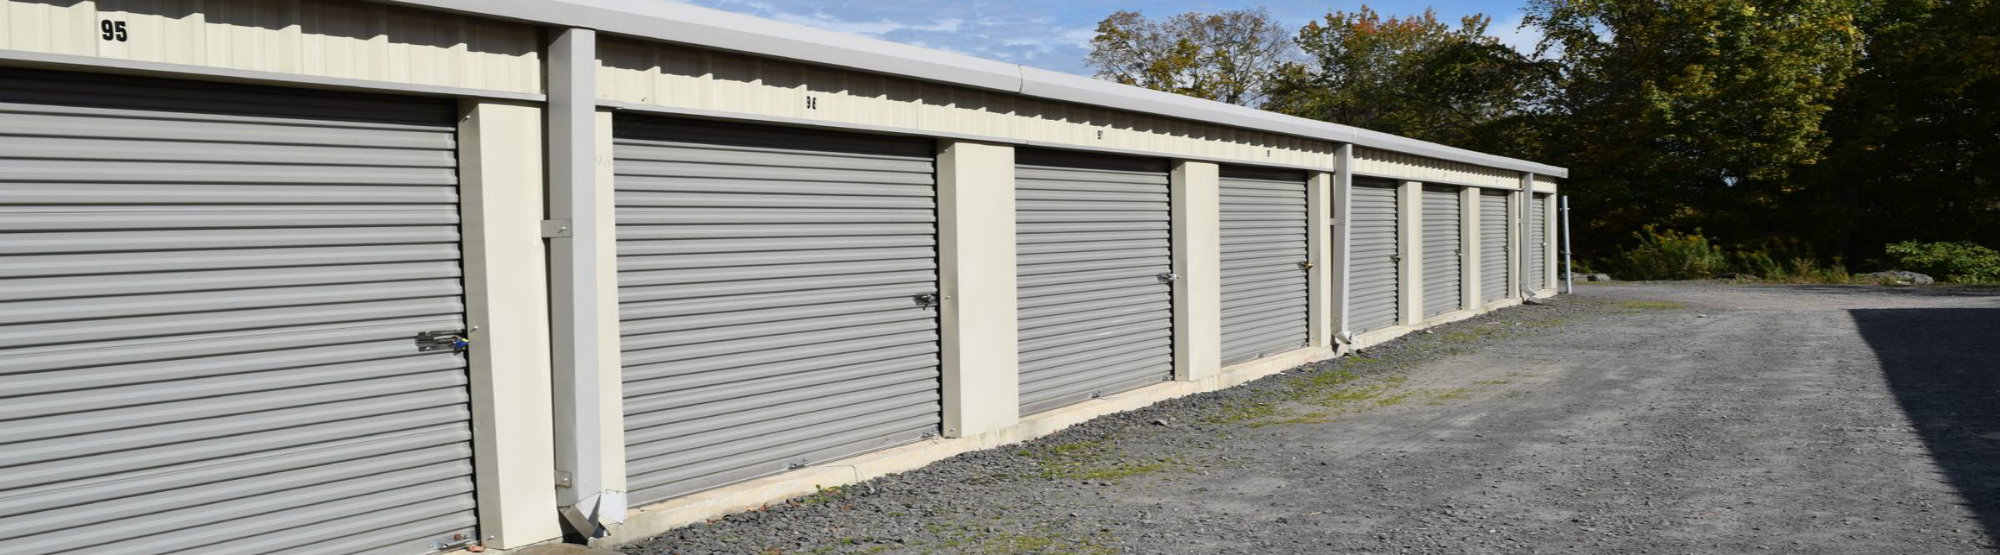 Drive up storage units in Waymart, PA